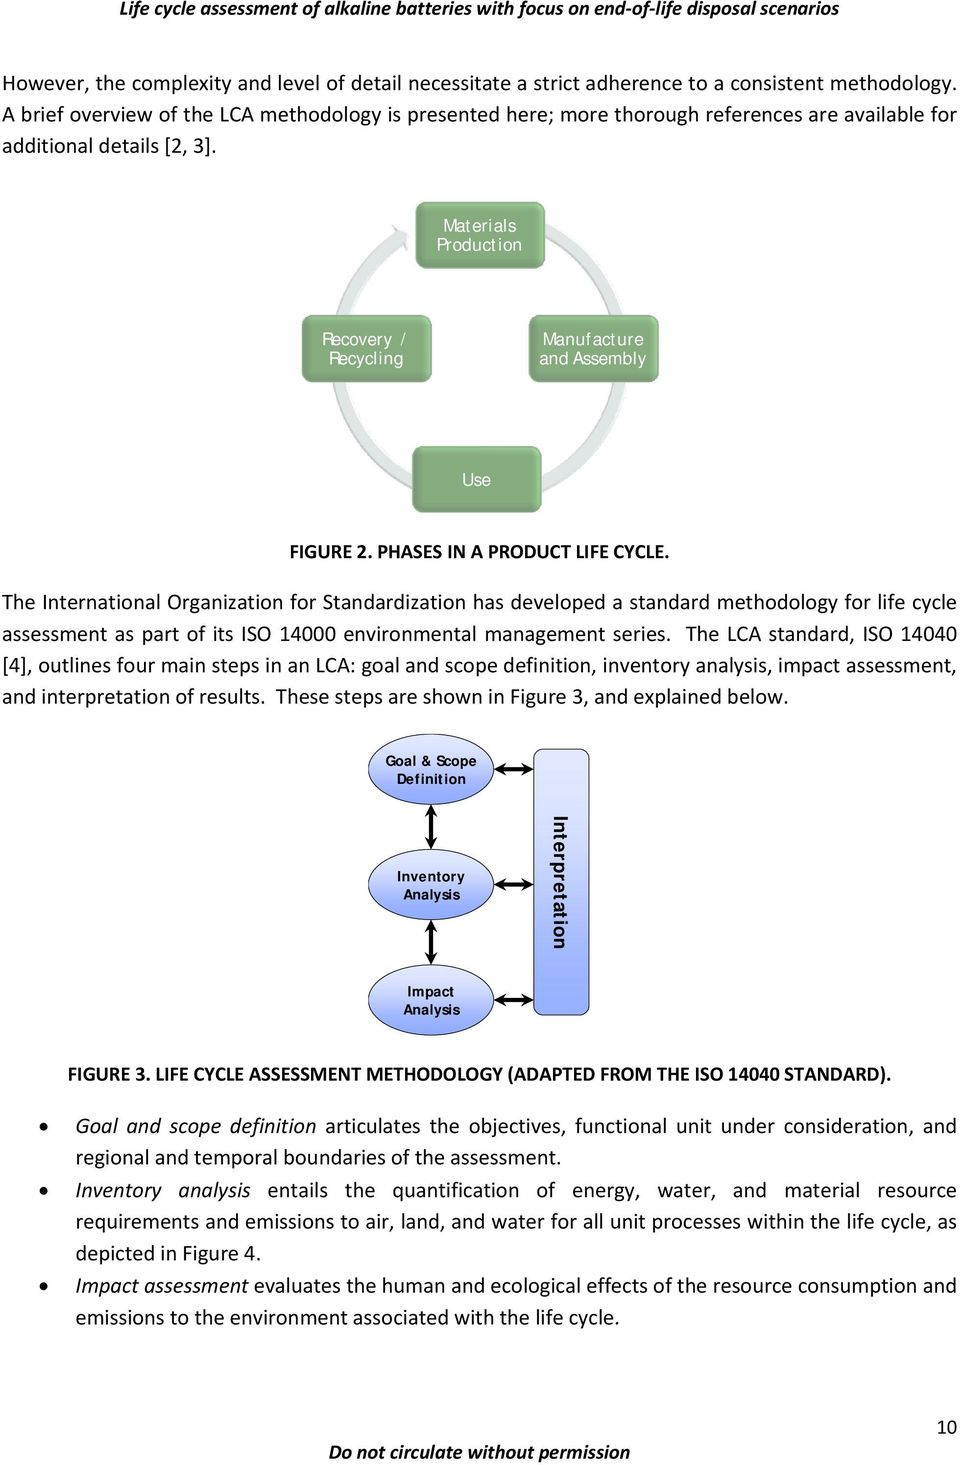 Materials Production Recovery / Recycling Manufacture and Assembly Use FIGURE 2. PHASES IN A PRODUCT LIFE CYCLE.